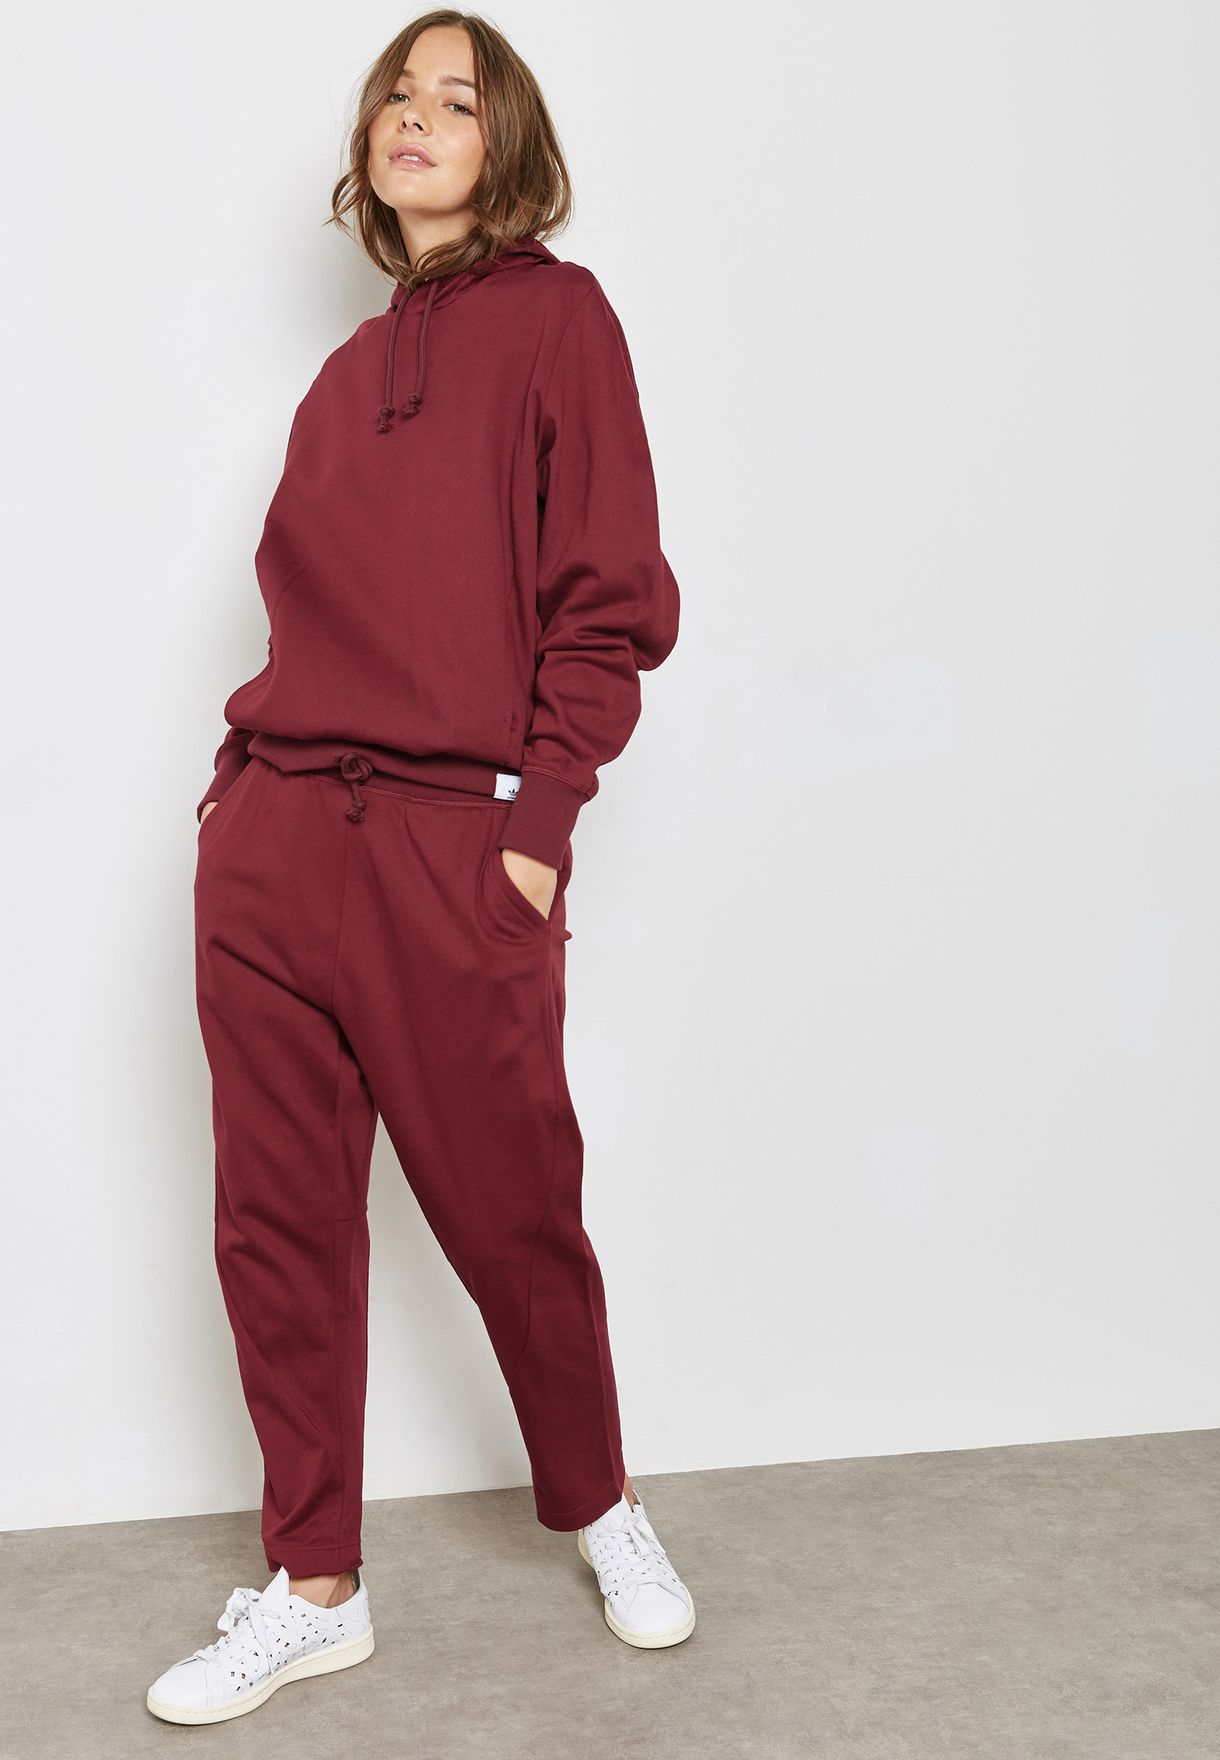 XBYO Sweatpants